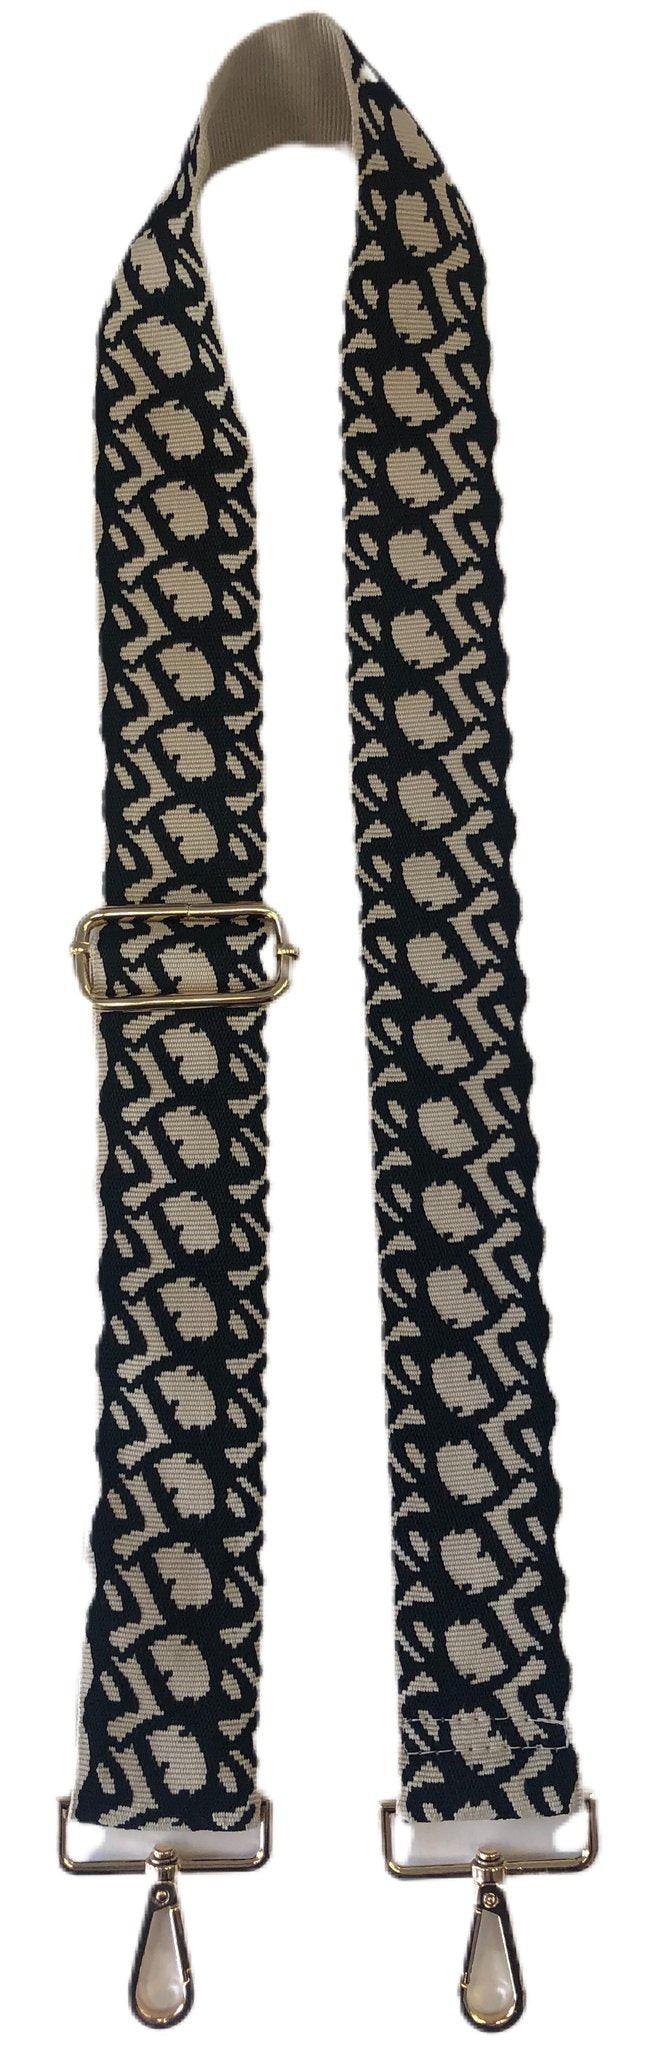 Black/Cream Wave Bag Strap w/Gold Hardware